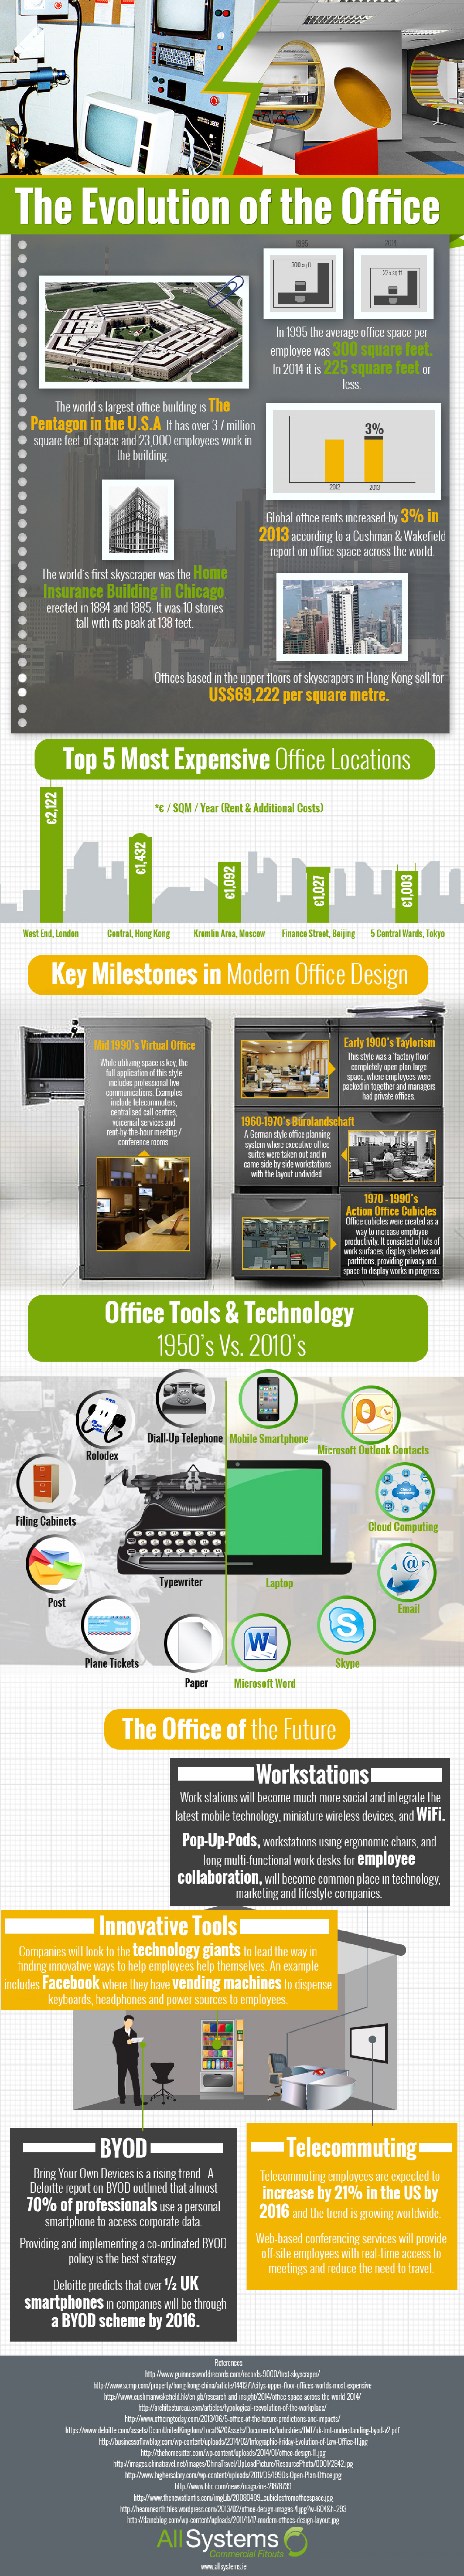 The Evolution of the Office, An infographic – How Modern Offices Have Evolved And What to Expect in the Future Infographic